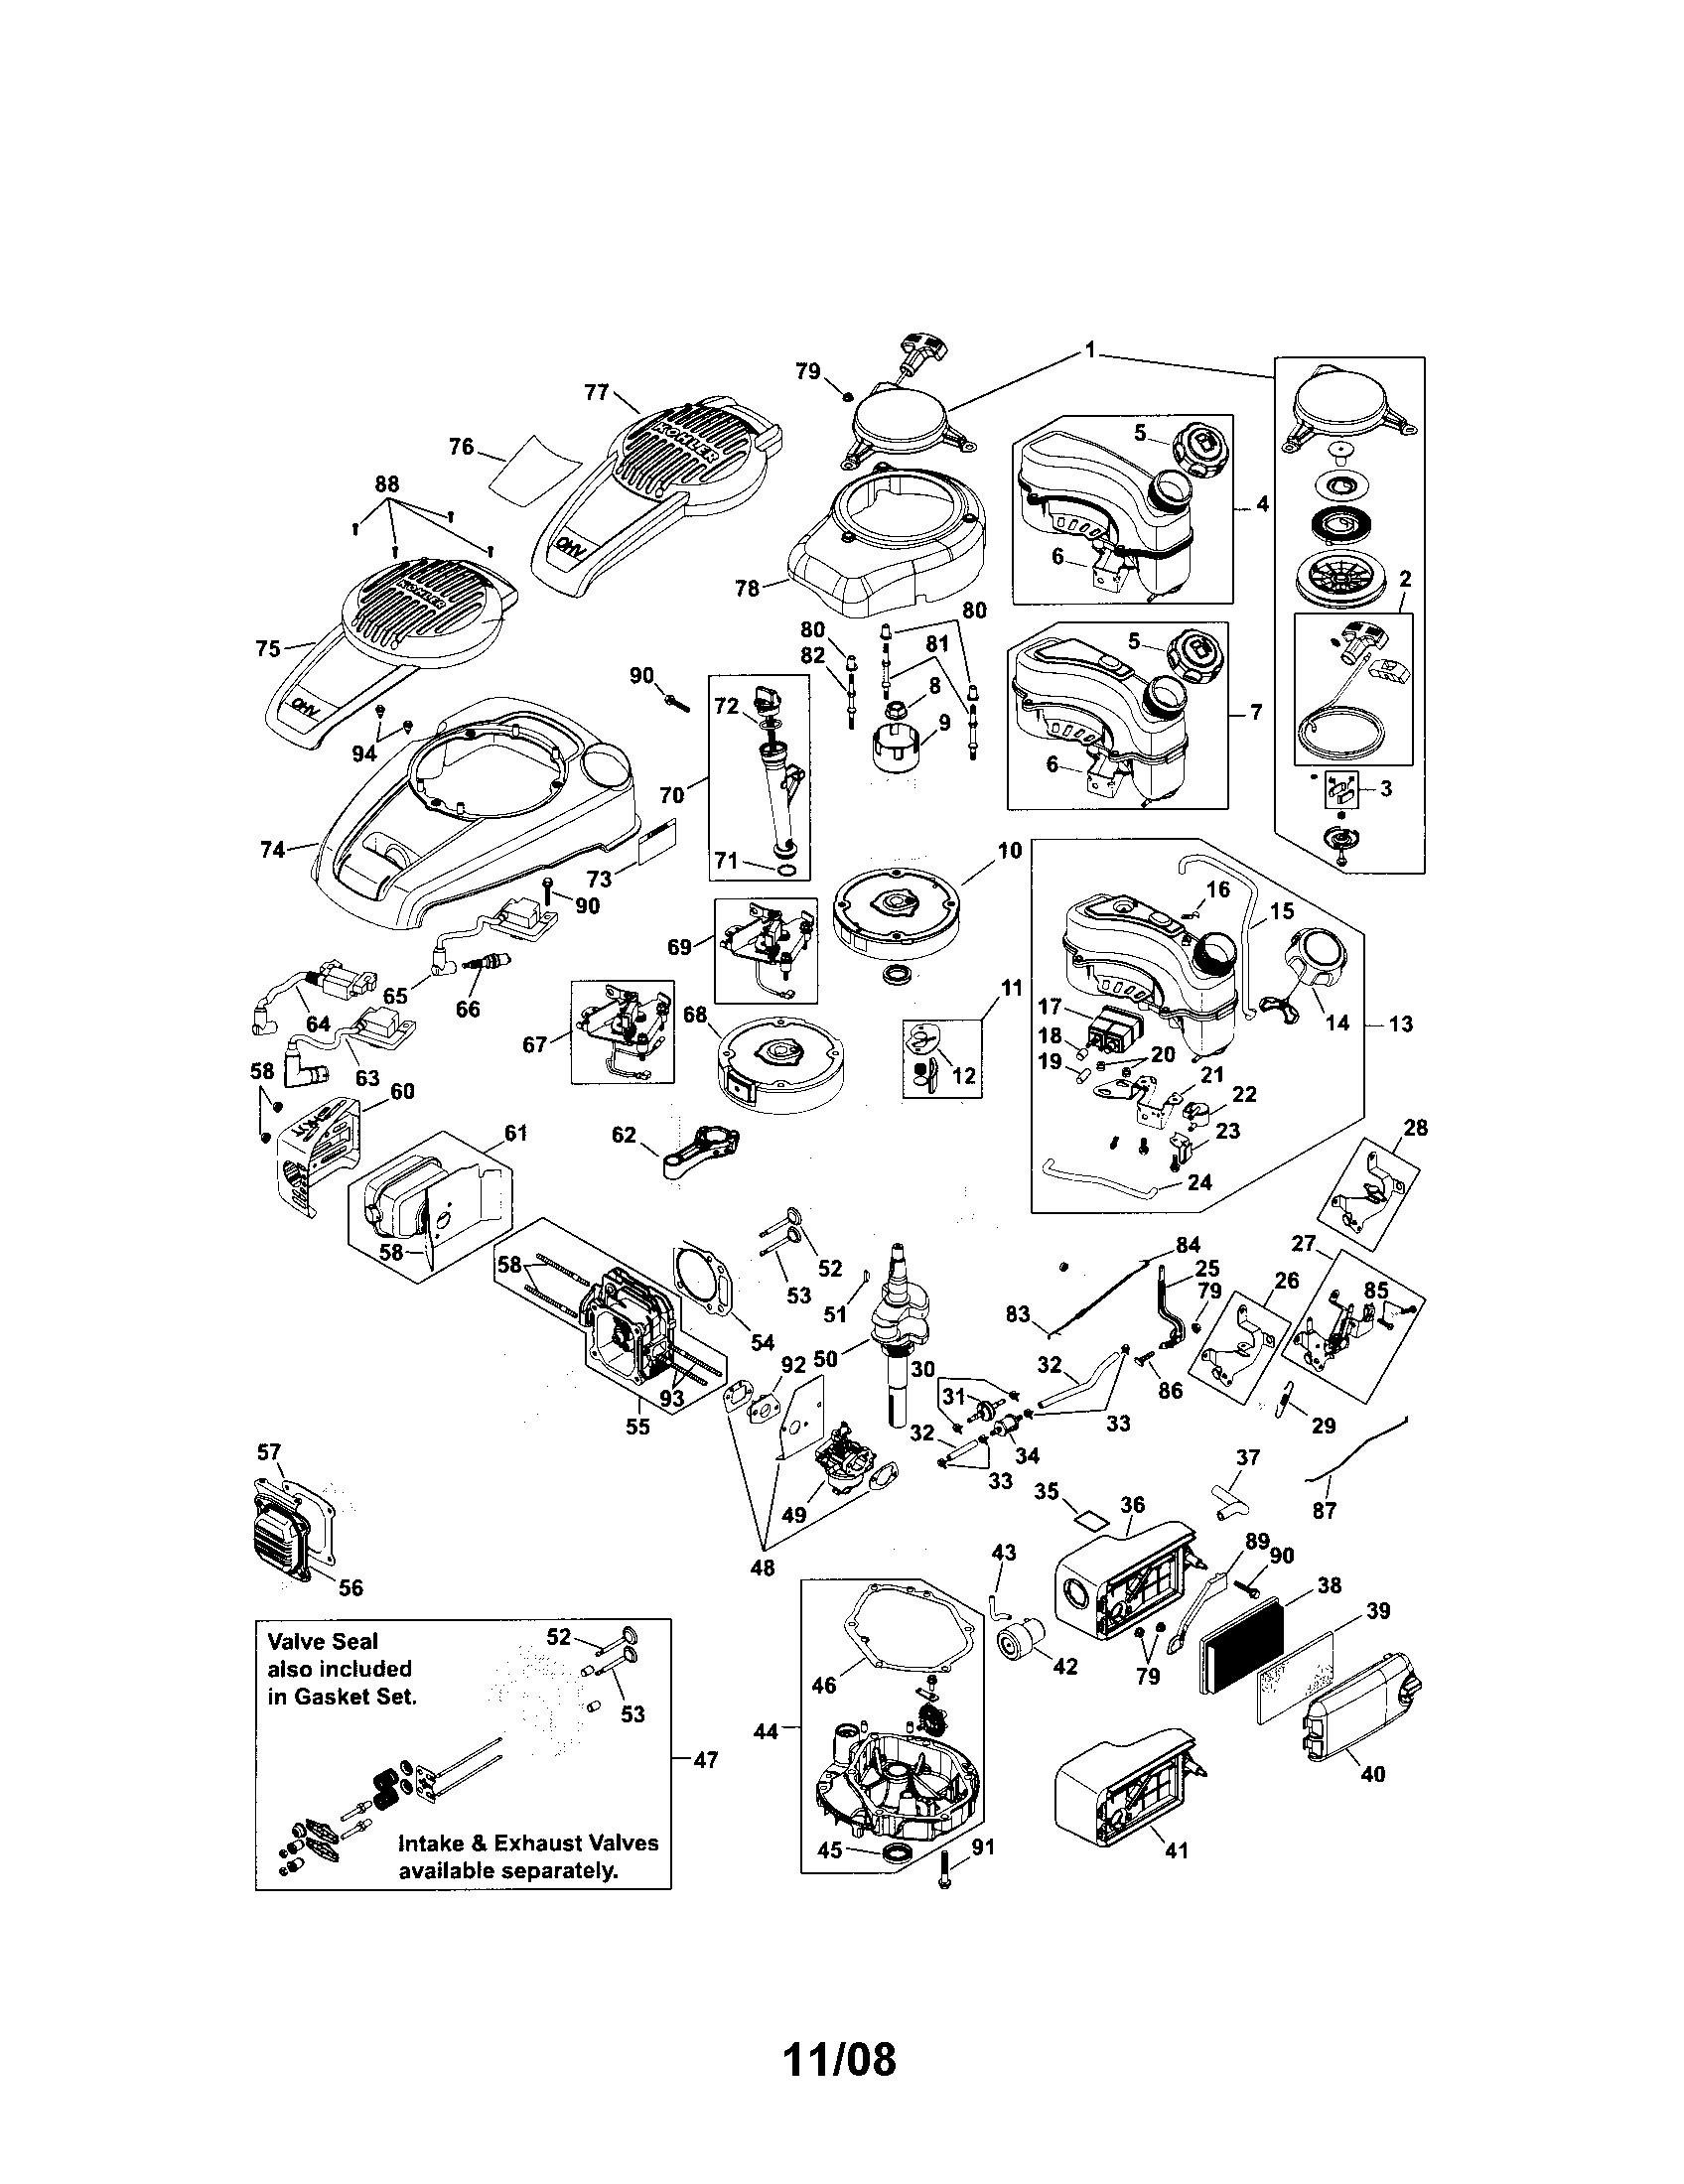 Kohler K301 Engine Diagram Kohler Engine Diagram Diagram Chart Gallery Of Kohler K301 Engine Diagram